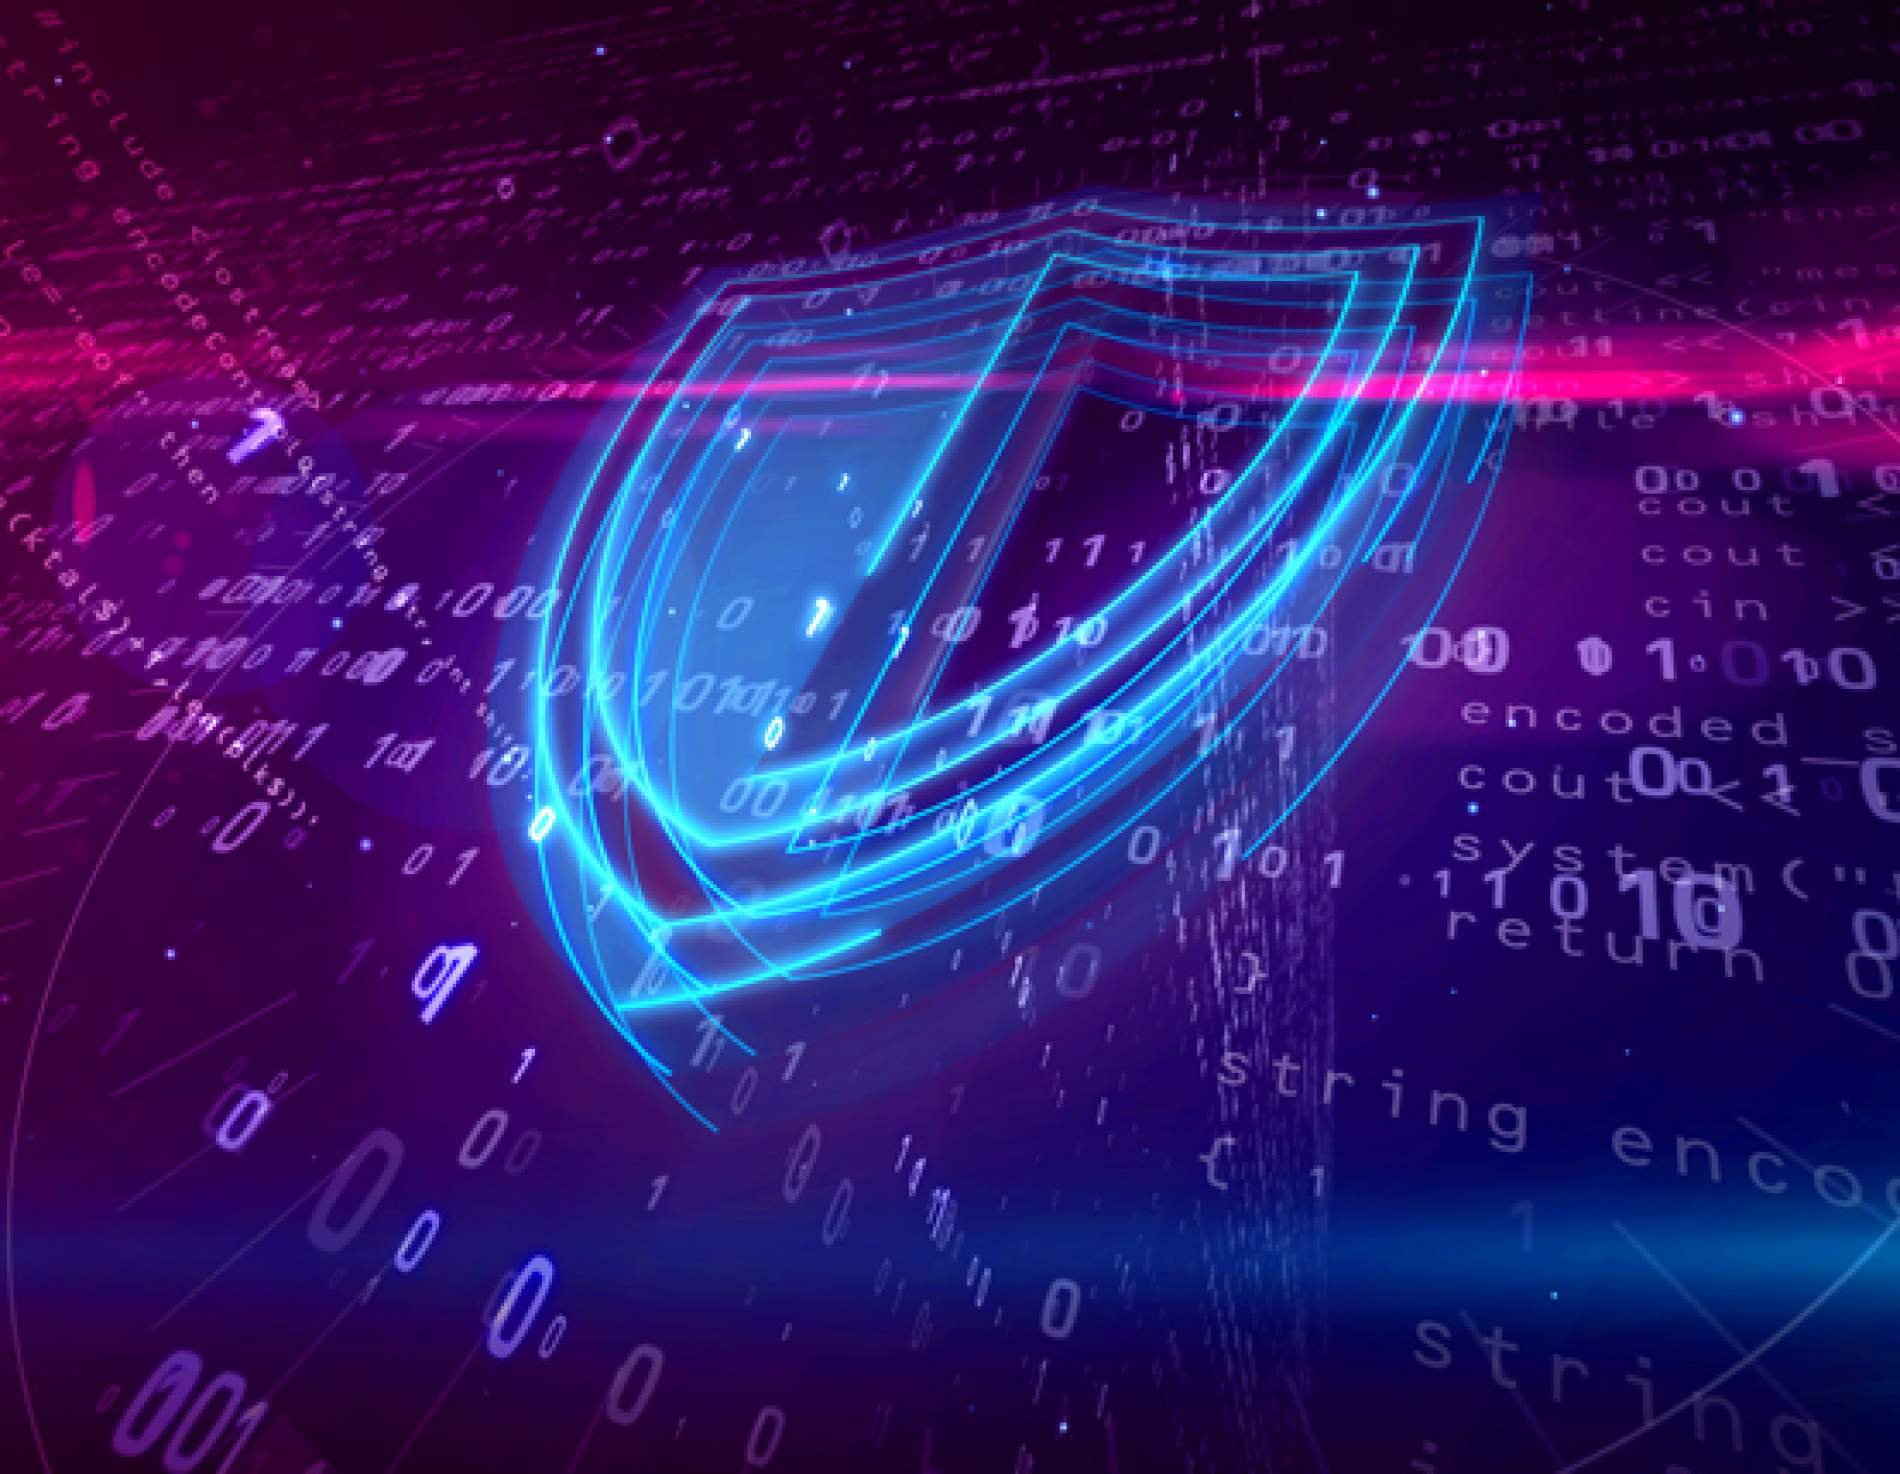 Cyber shield protecting data